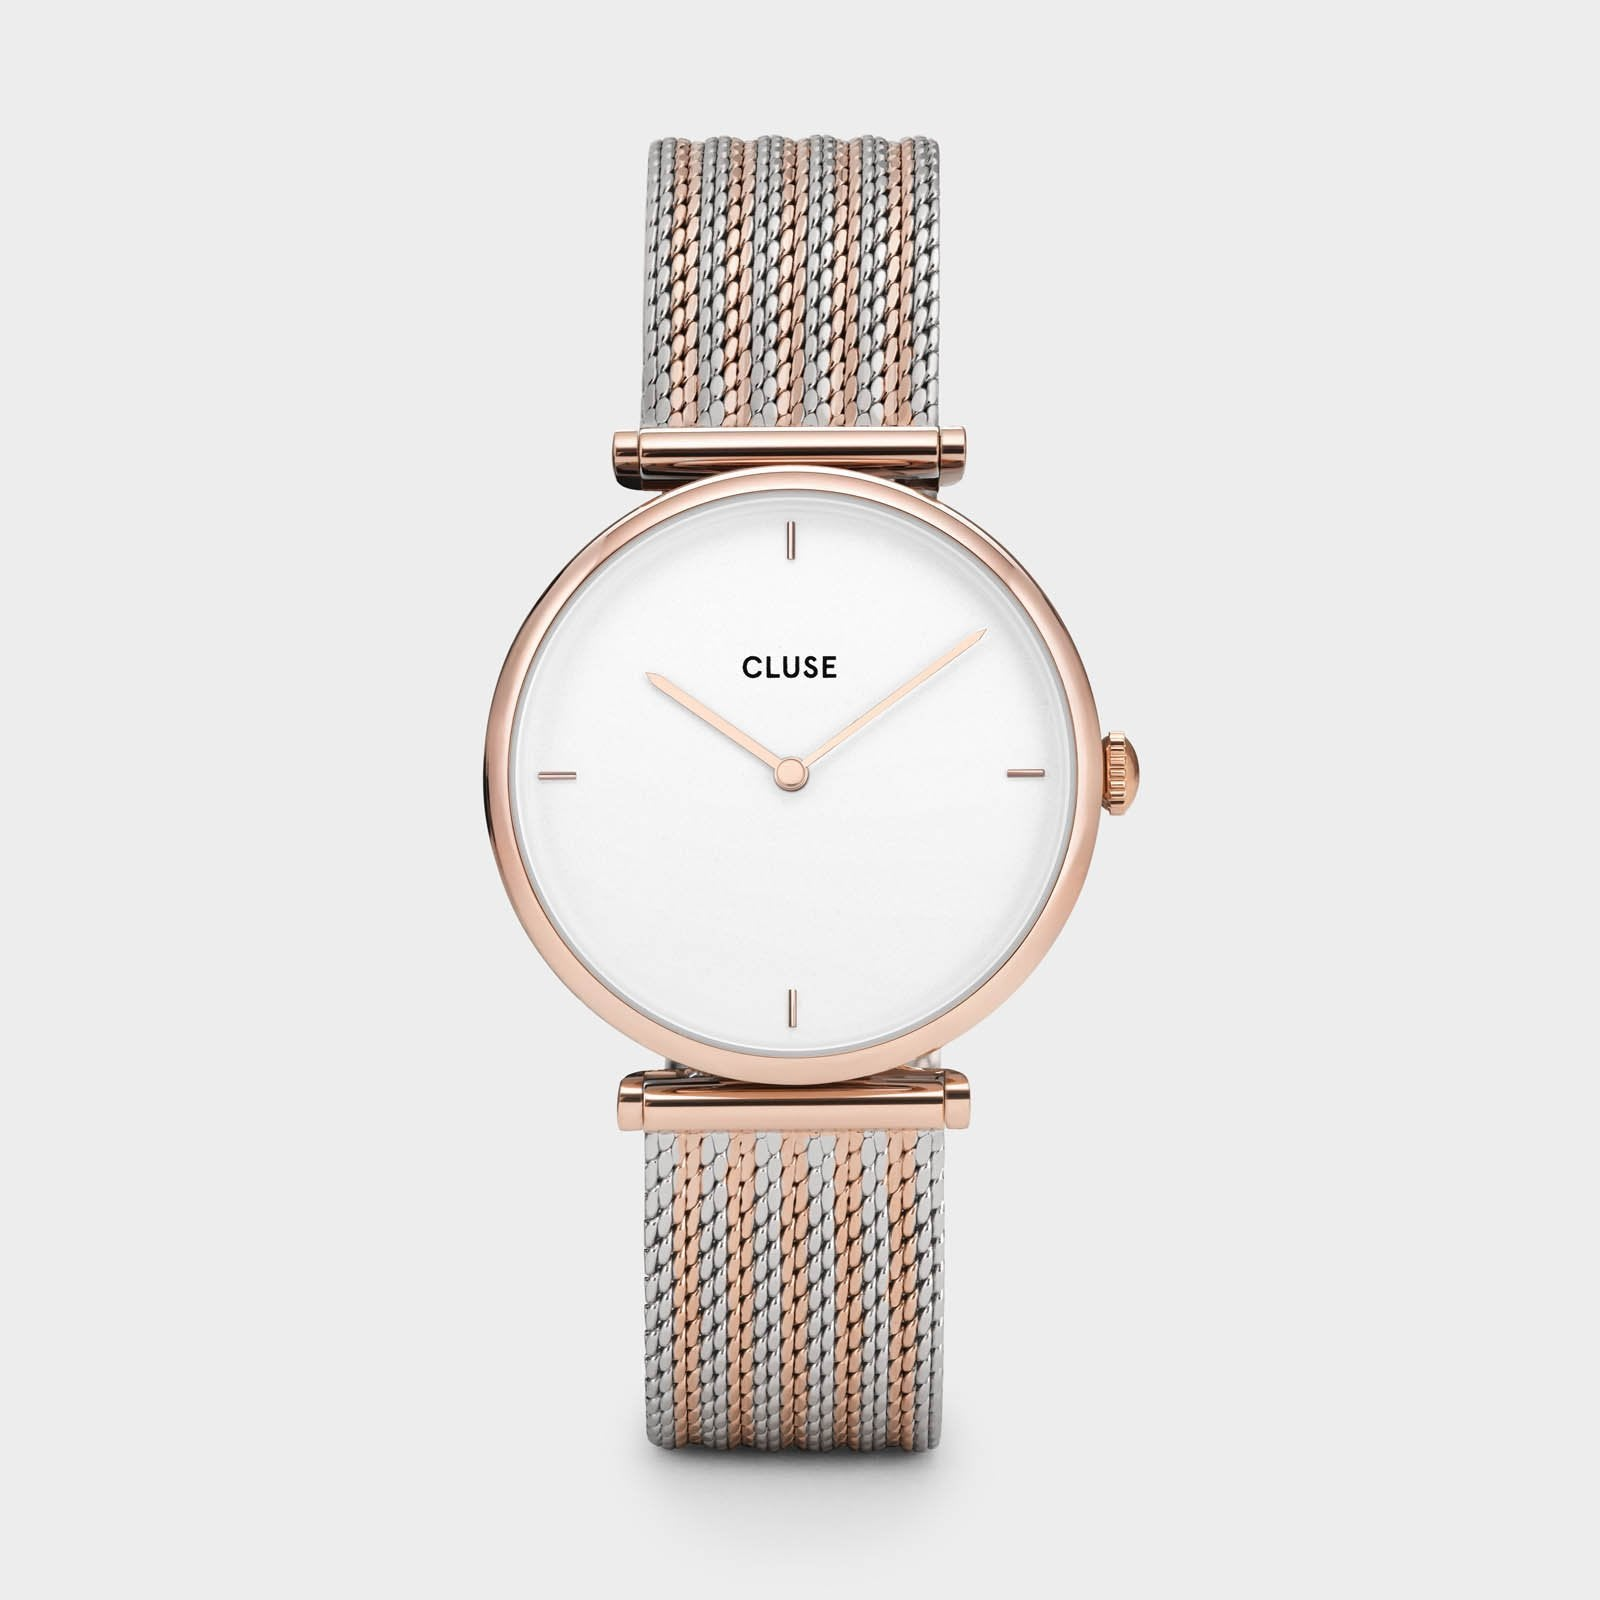 CLUSE Triomphe Rose Gold Bicolour Mesh CL61003 - watch